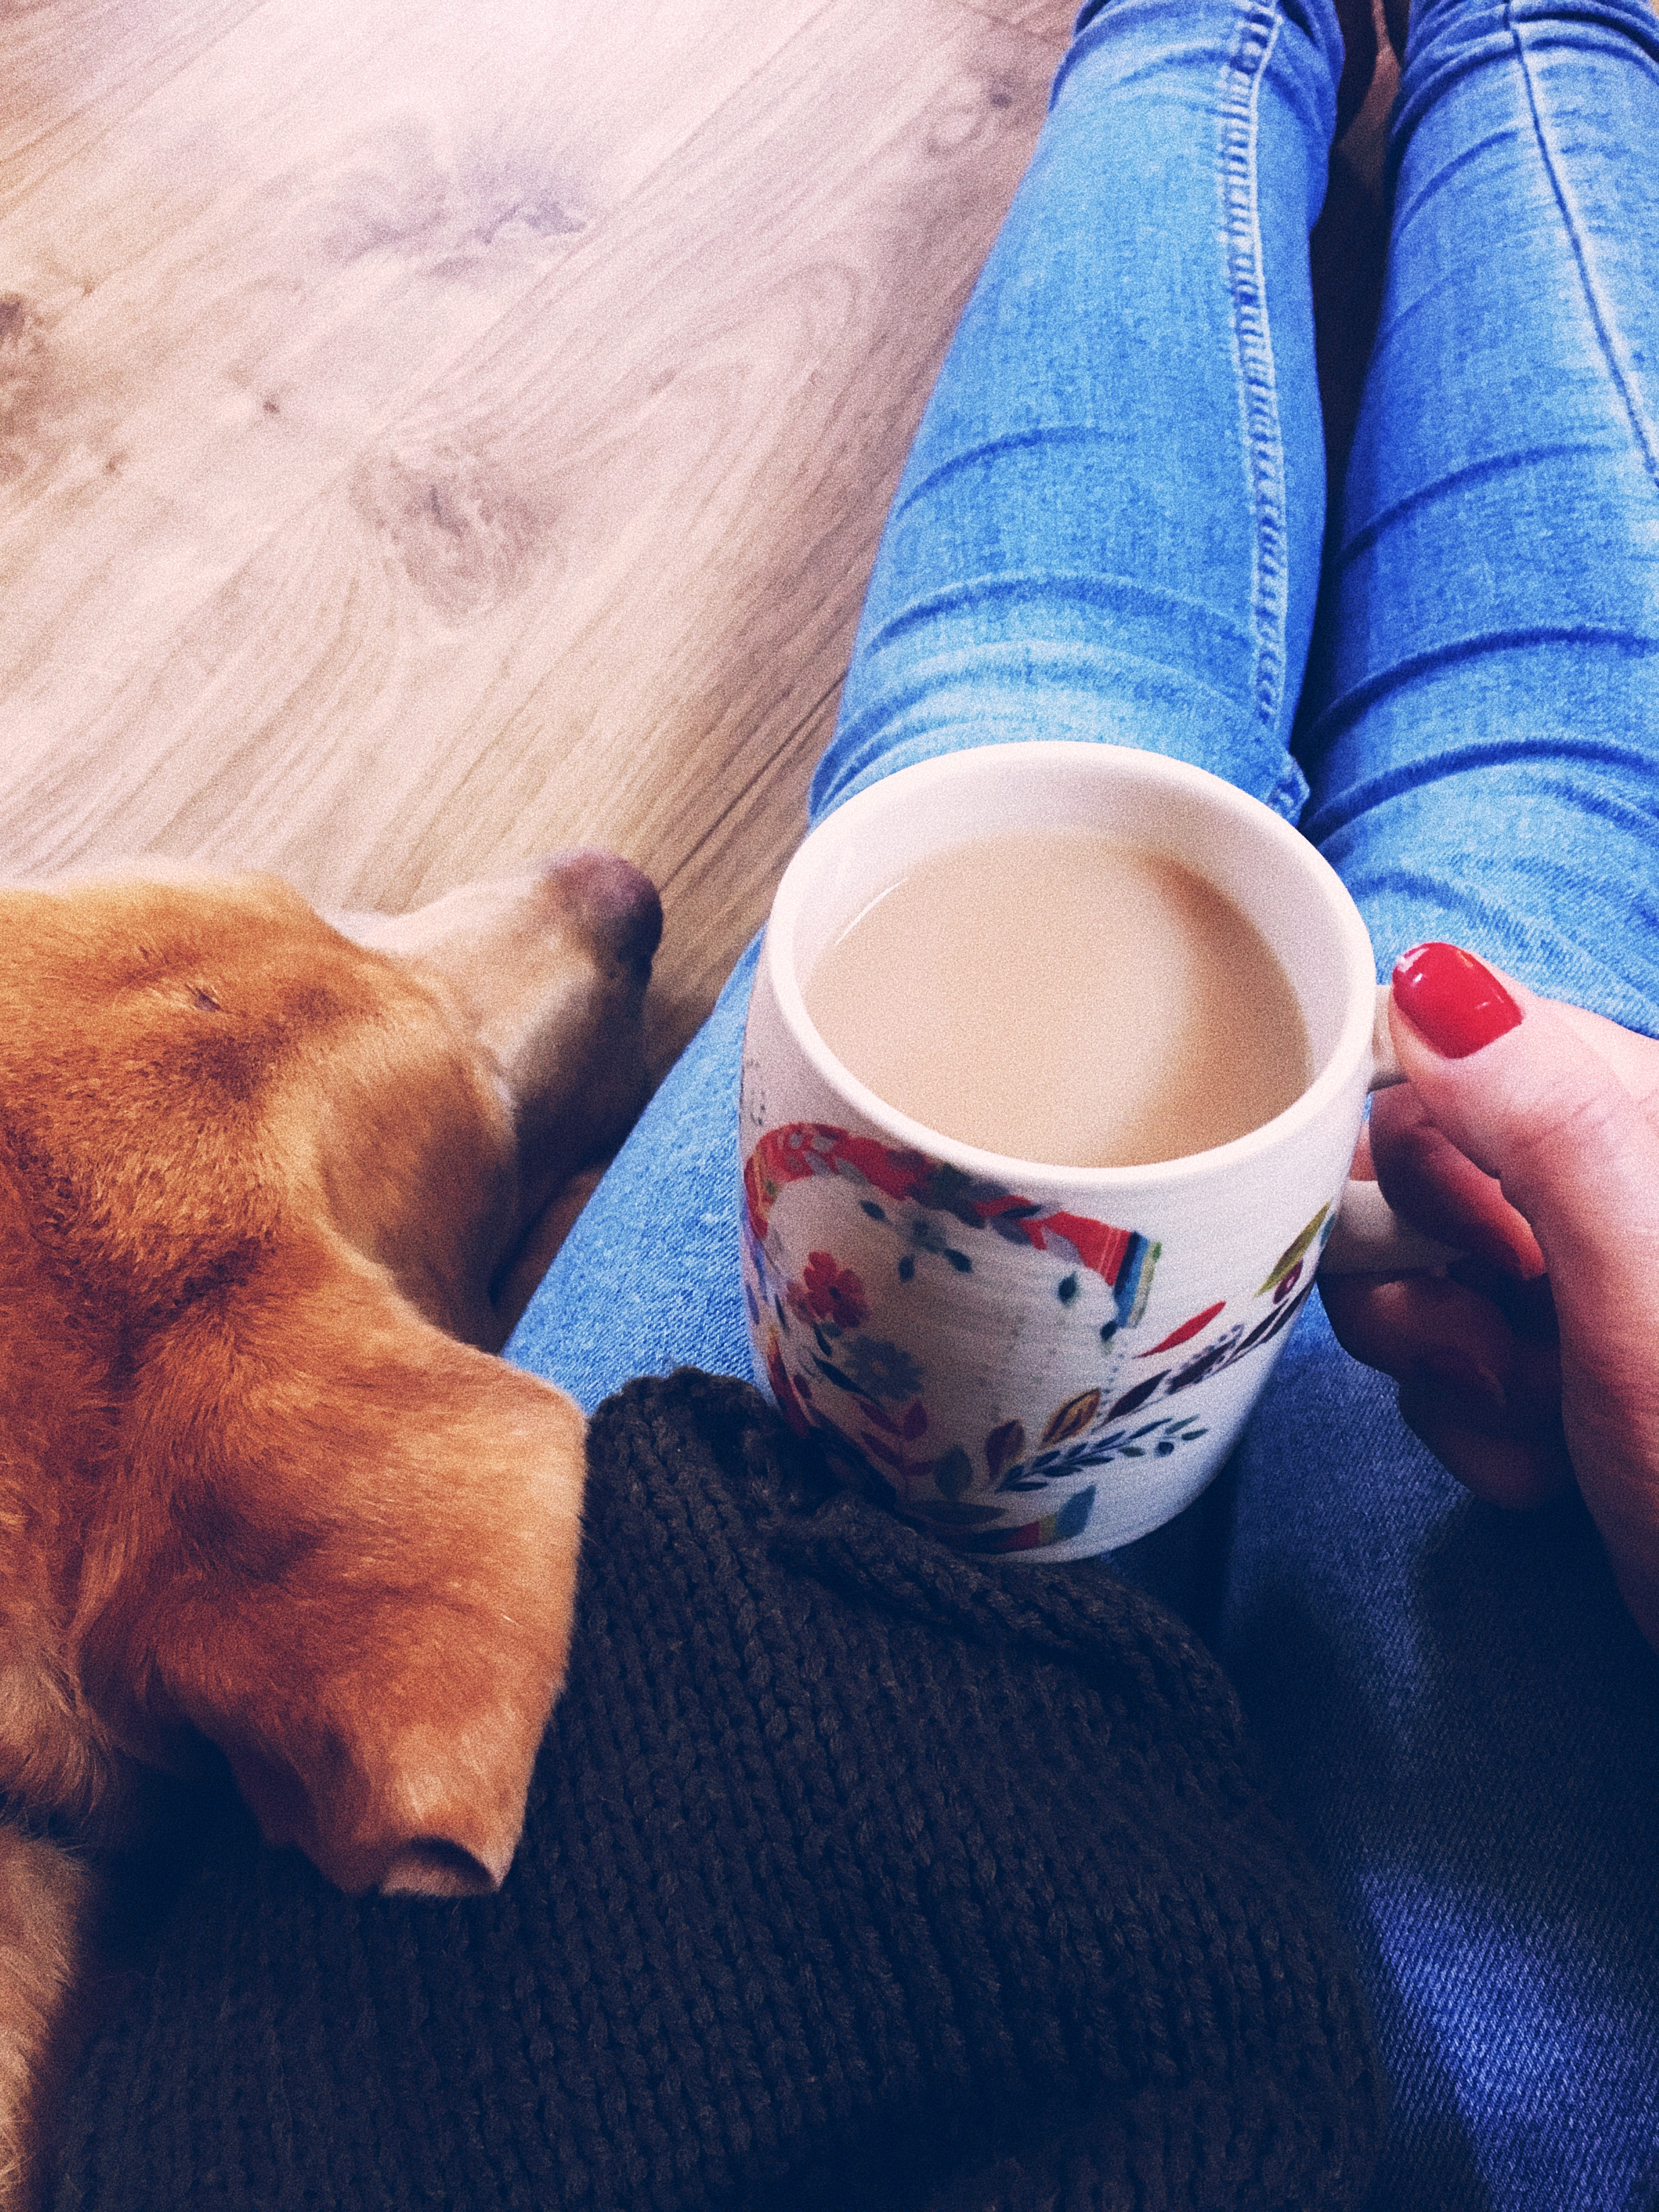 Cosy image of me holding a cup of tea cuddling my dog